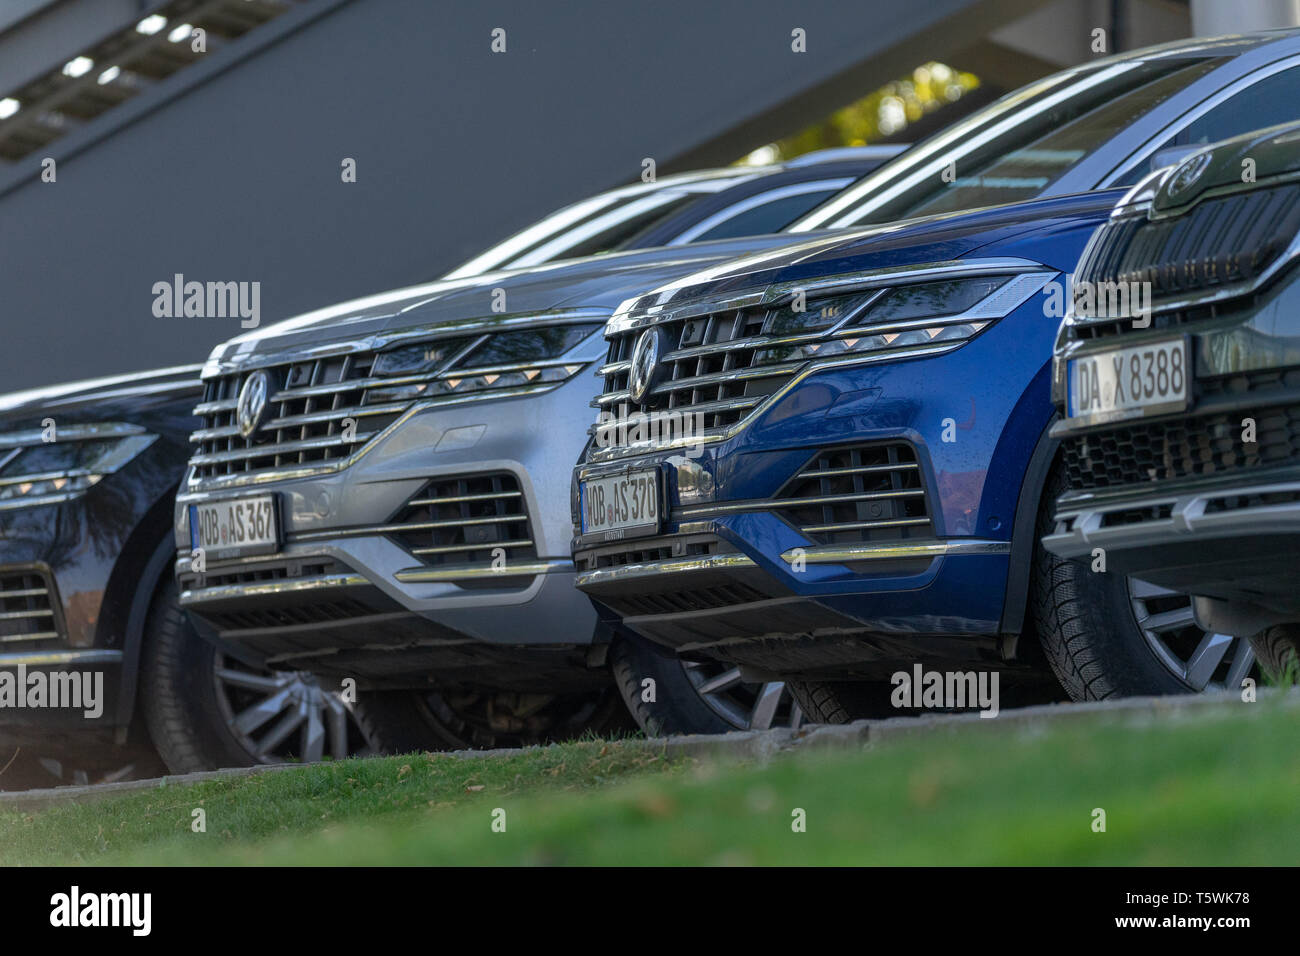 Wolfsburg, Germany, April 20., 2019: Volkswagen and Skoda off-road vehicles on the edge of the Autostadt off-road course - Stock Image